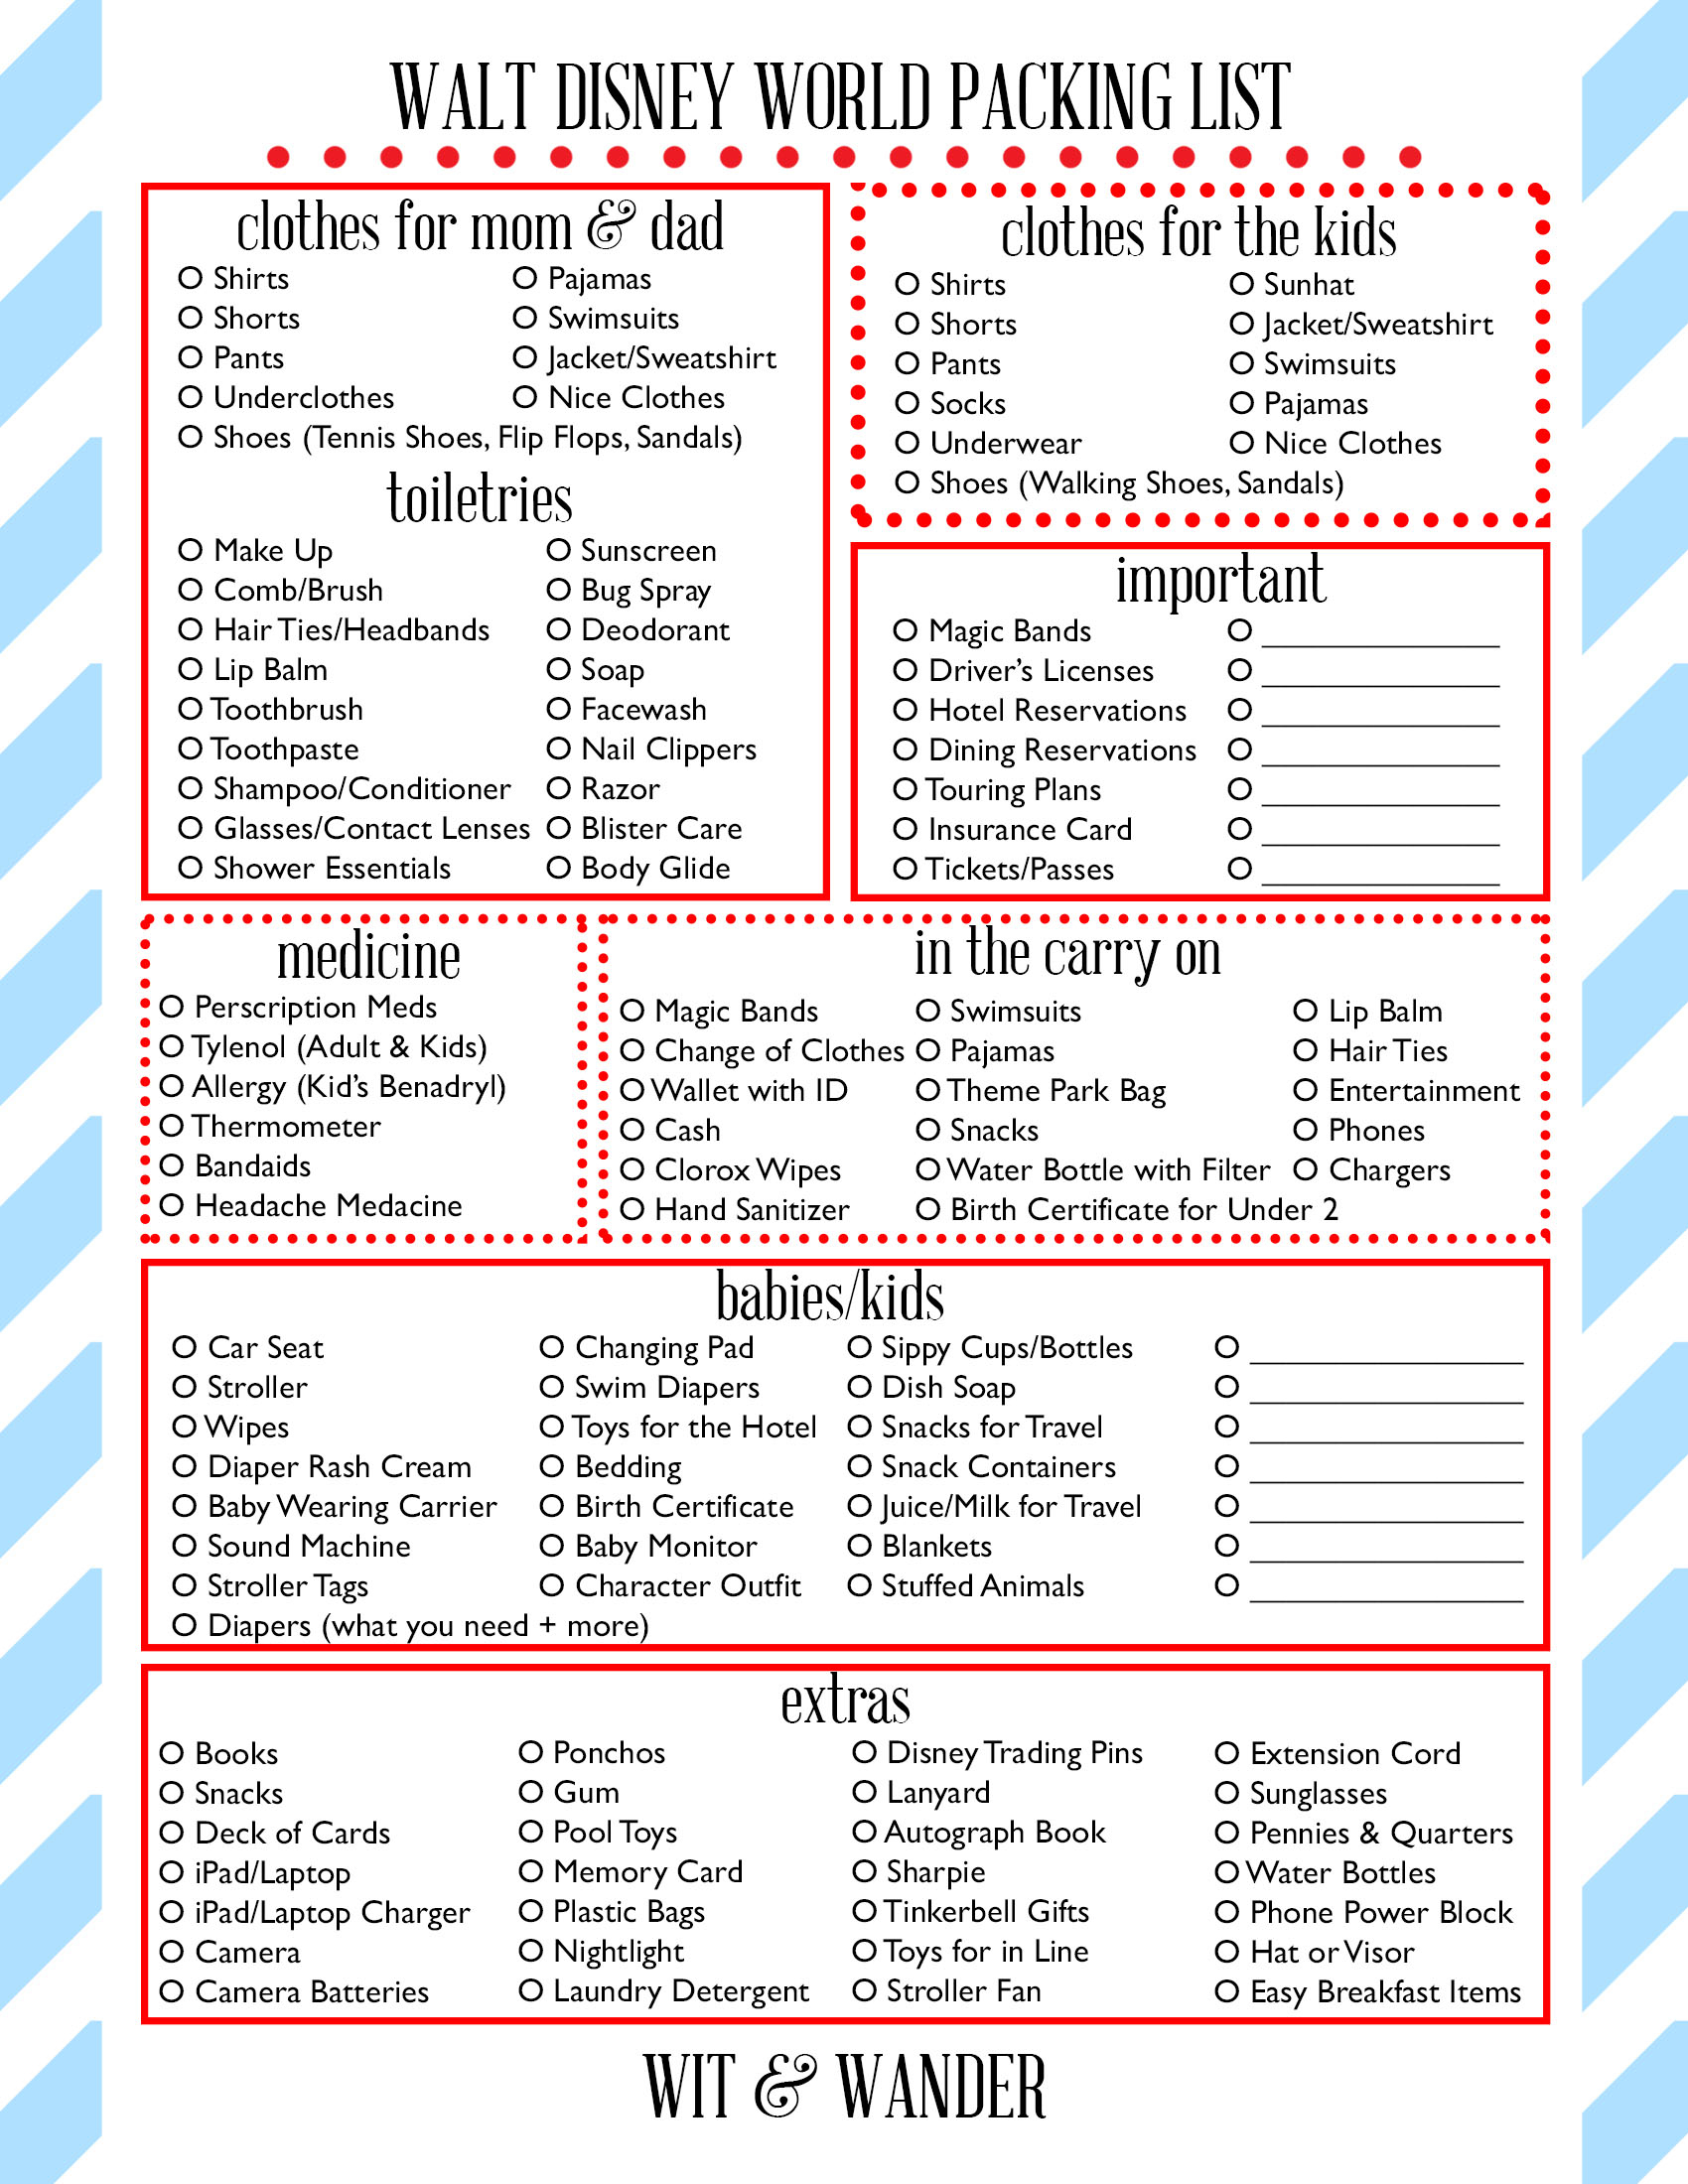 Walt Disney World Free Printables - Our Handcrafted Life